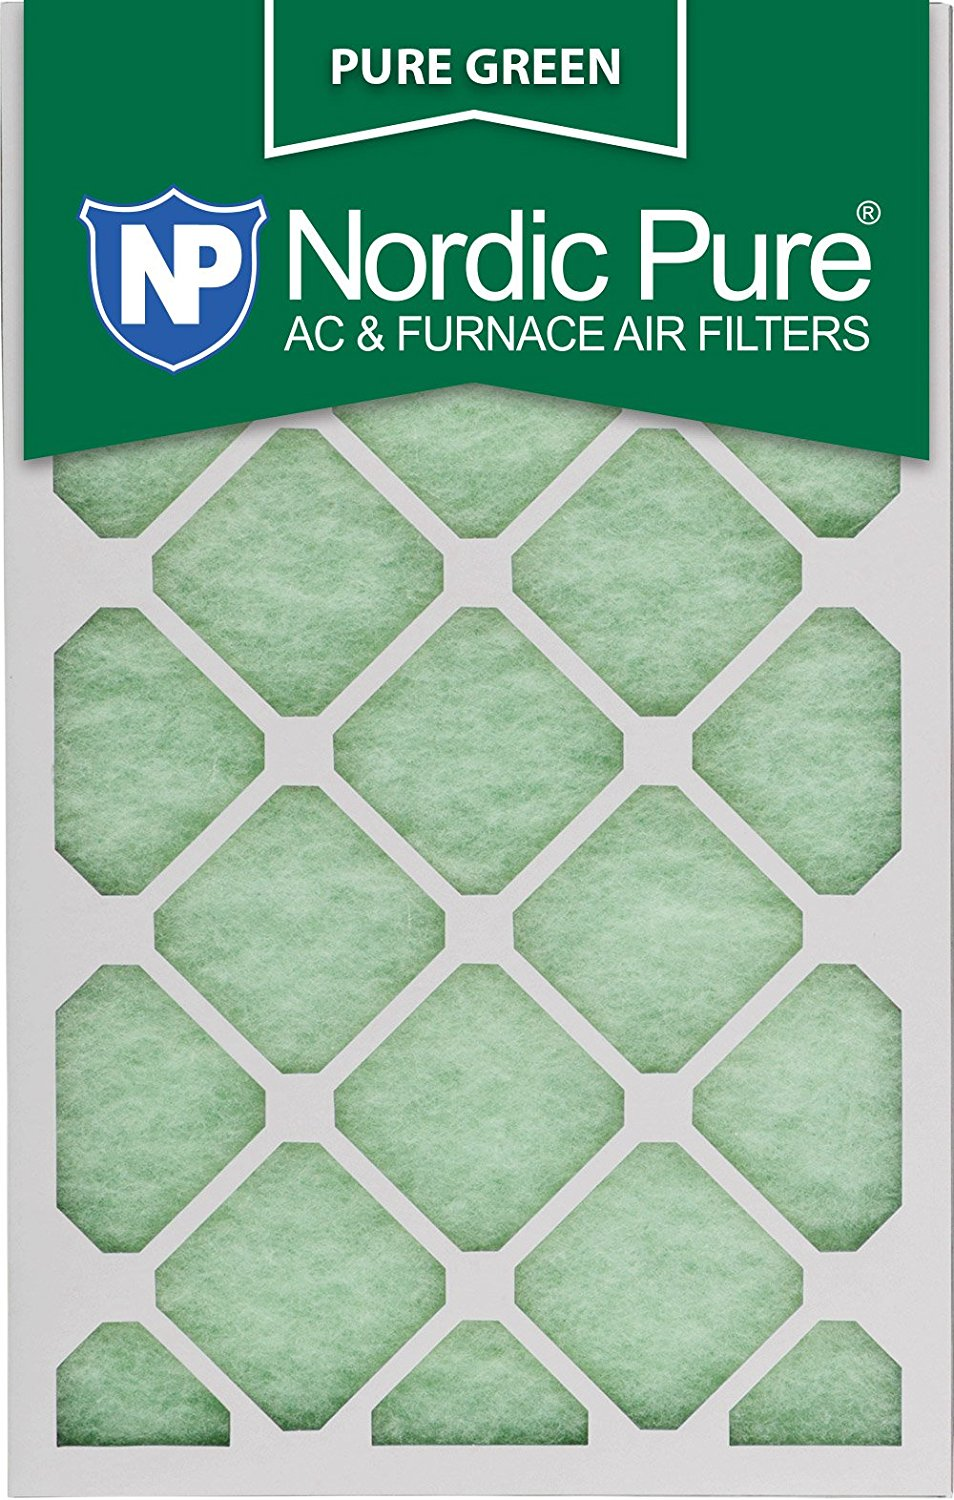 "Nordic Pure 20x25x1PureGreen-3 AC Furnace Air Filters, 20 x 25 x 1"", Pure Green"